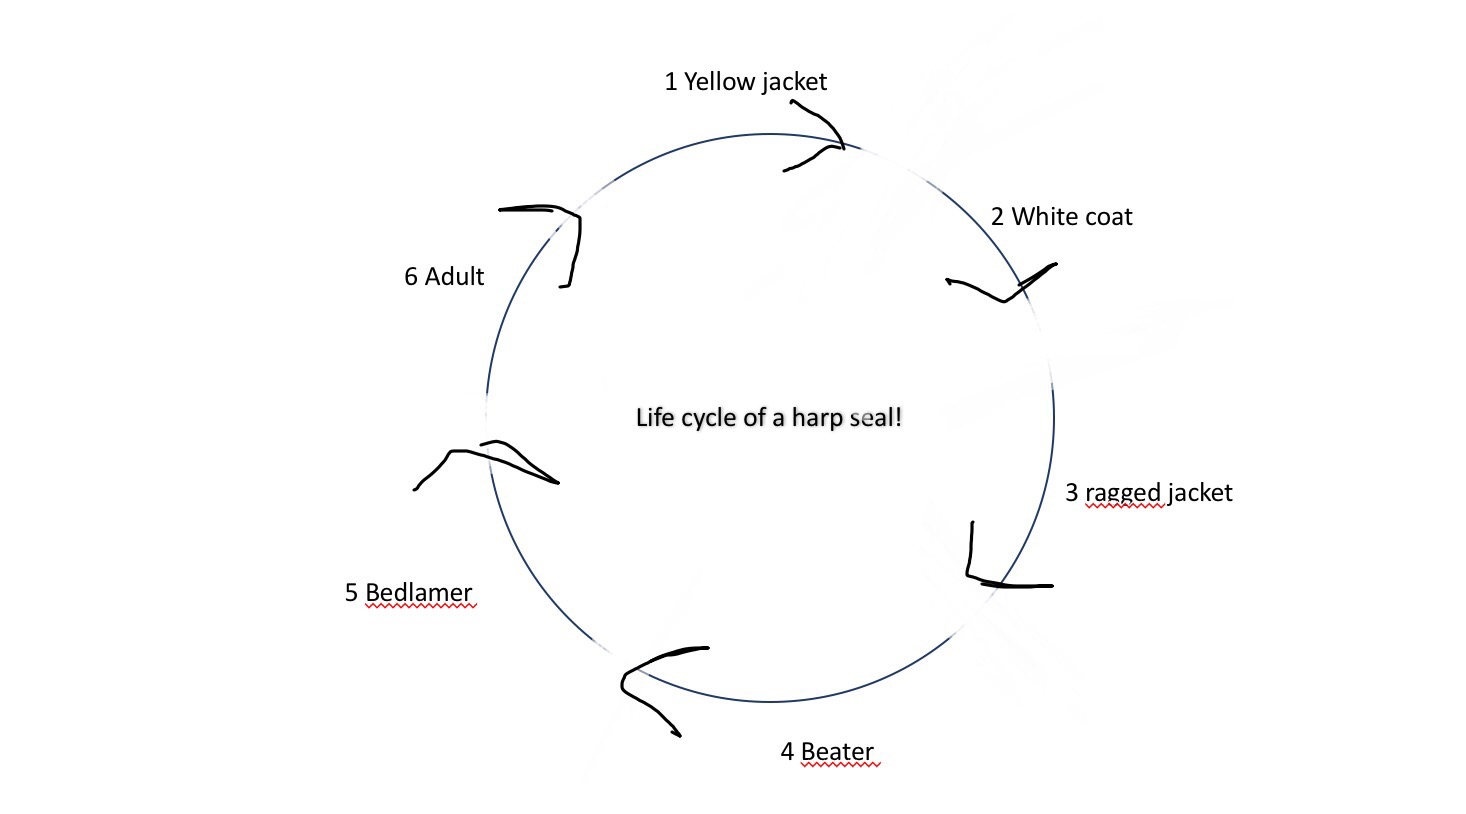 harp seal life cycle diagram att uverse house wiring project 2 mammals  britney 39s blog